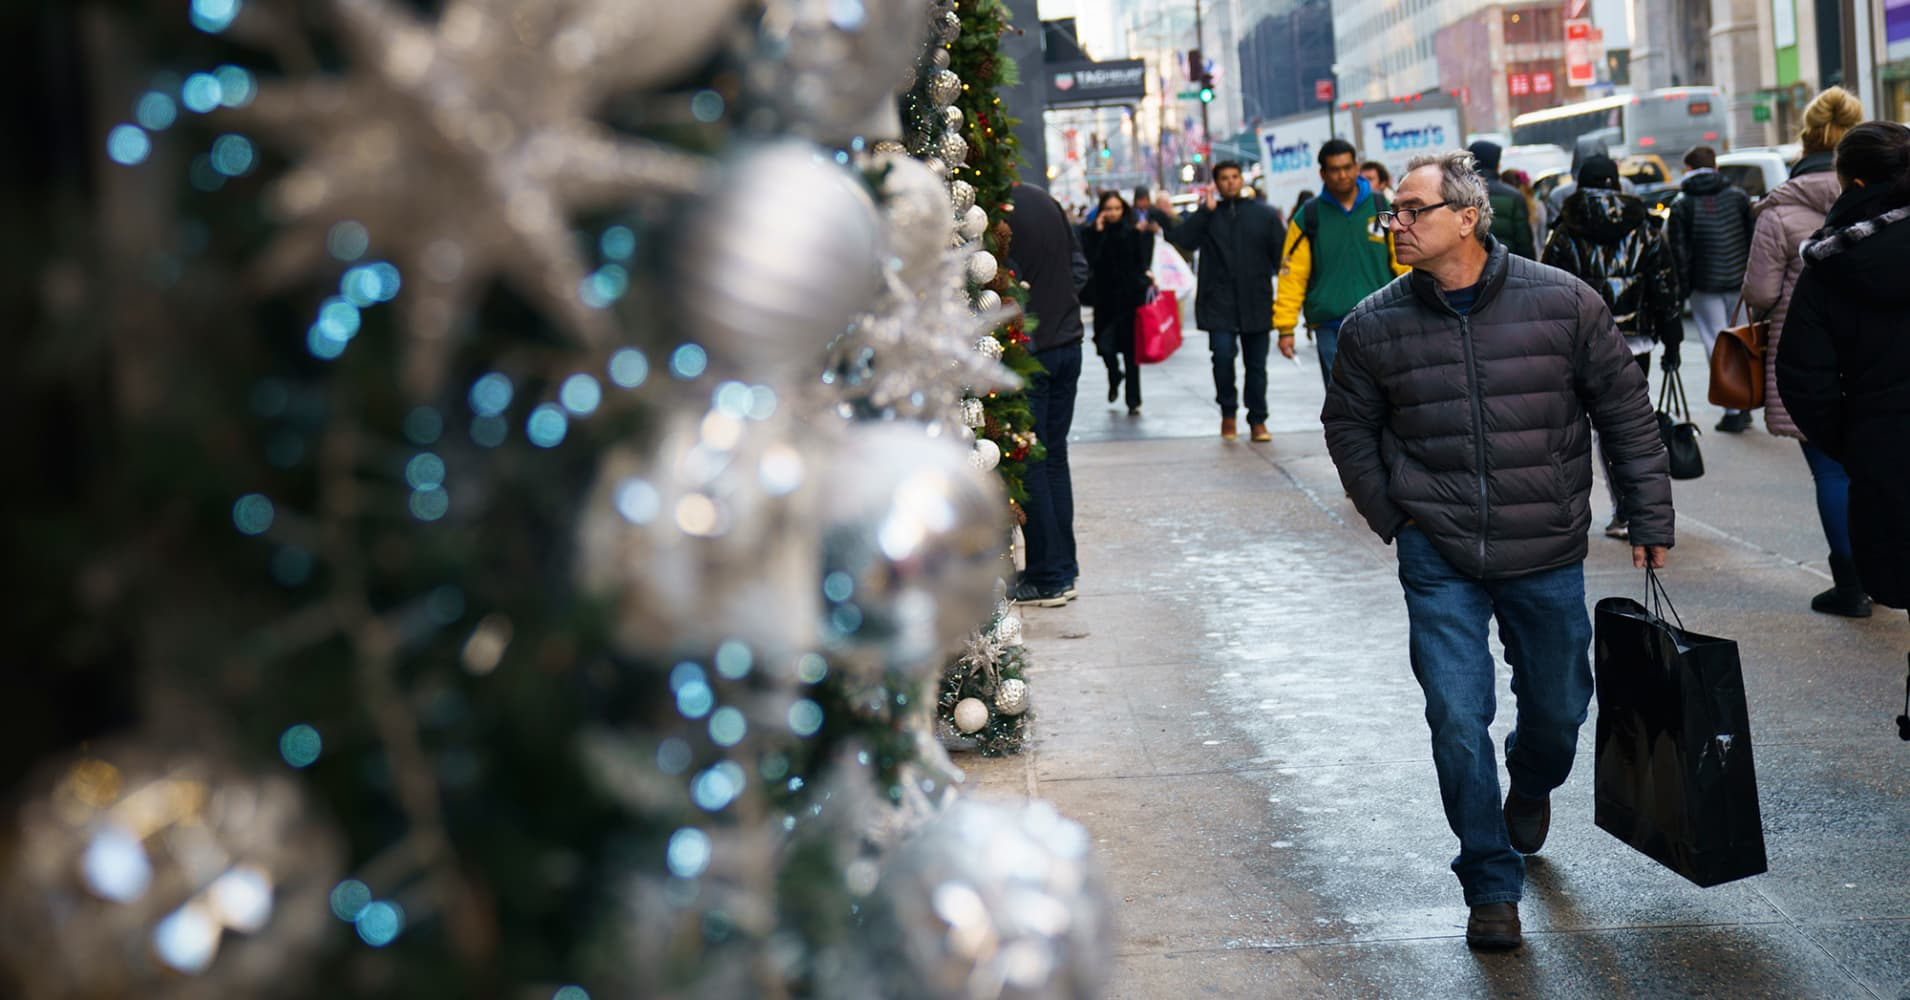 US Christmas sales predicted to surpass $1 trillion for the first time this year